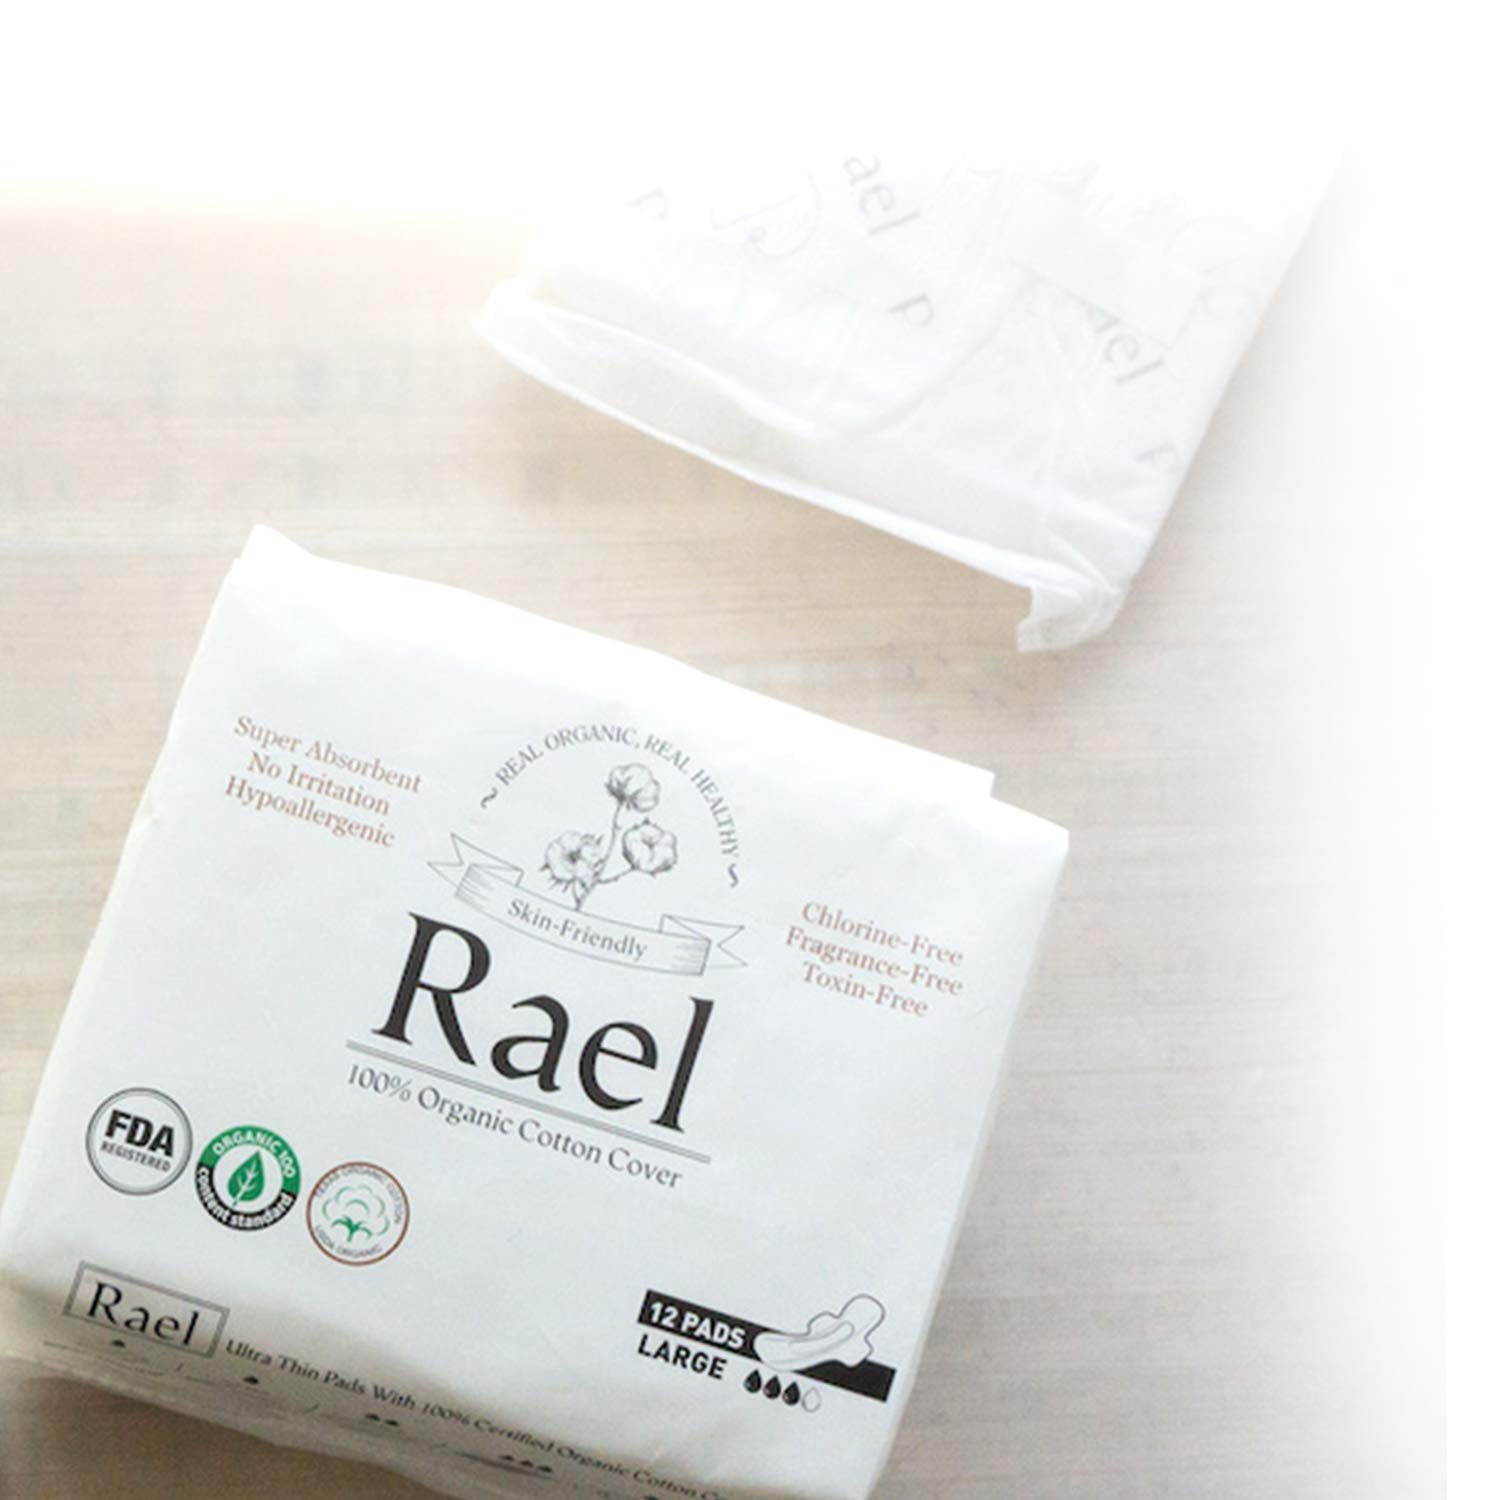 Organic Sanitary Pads from rael